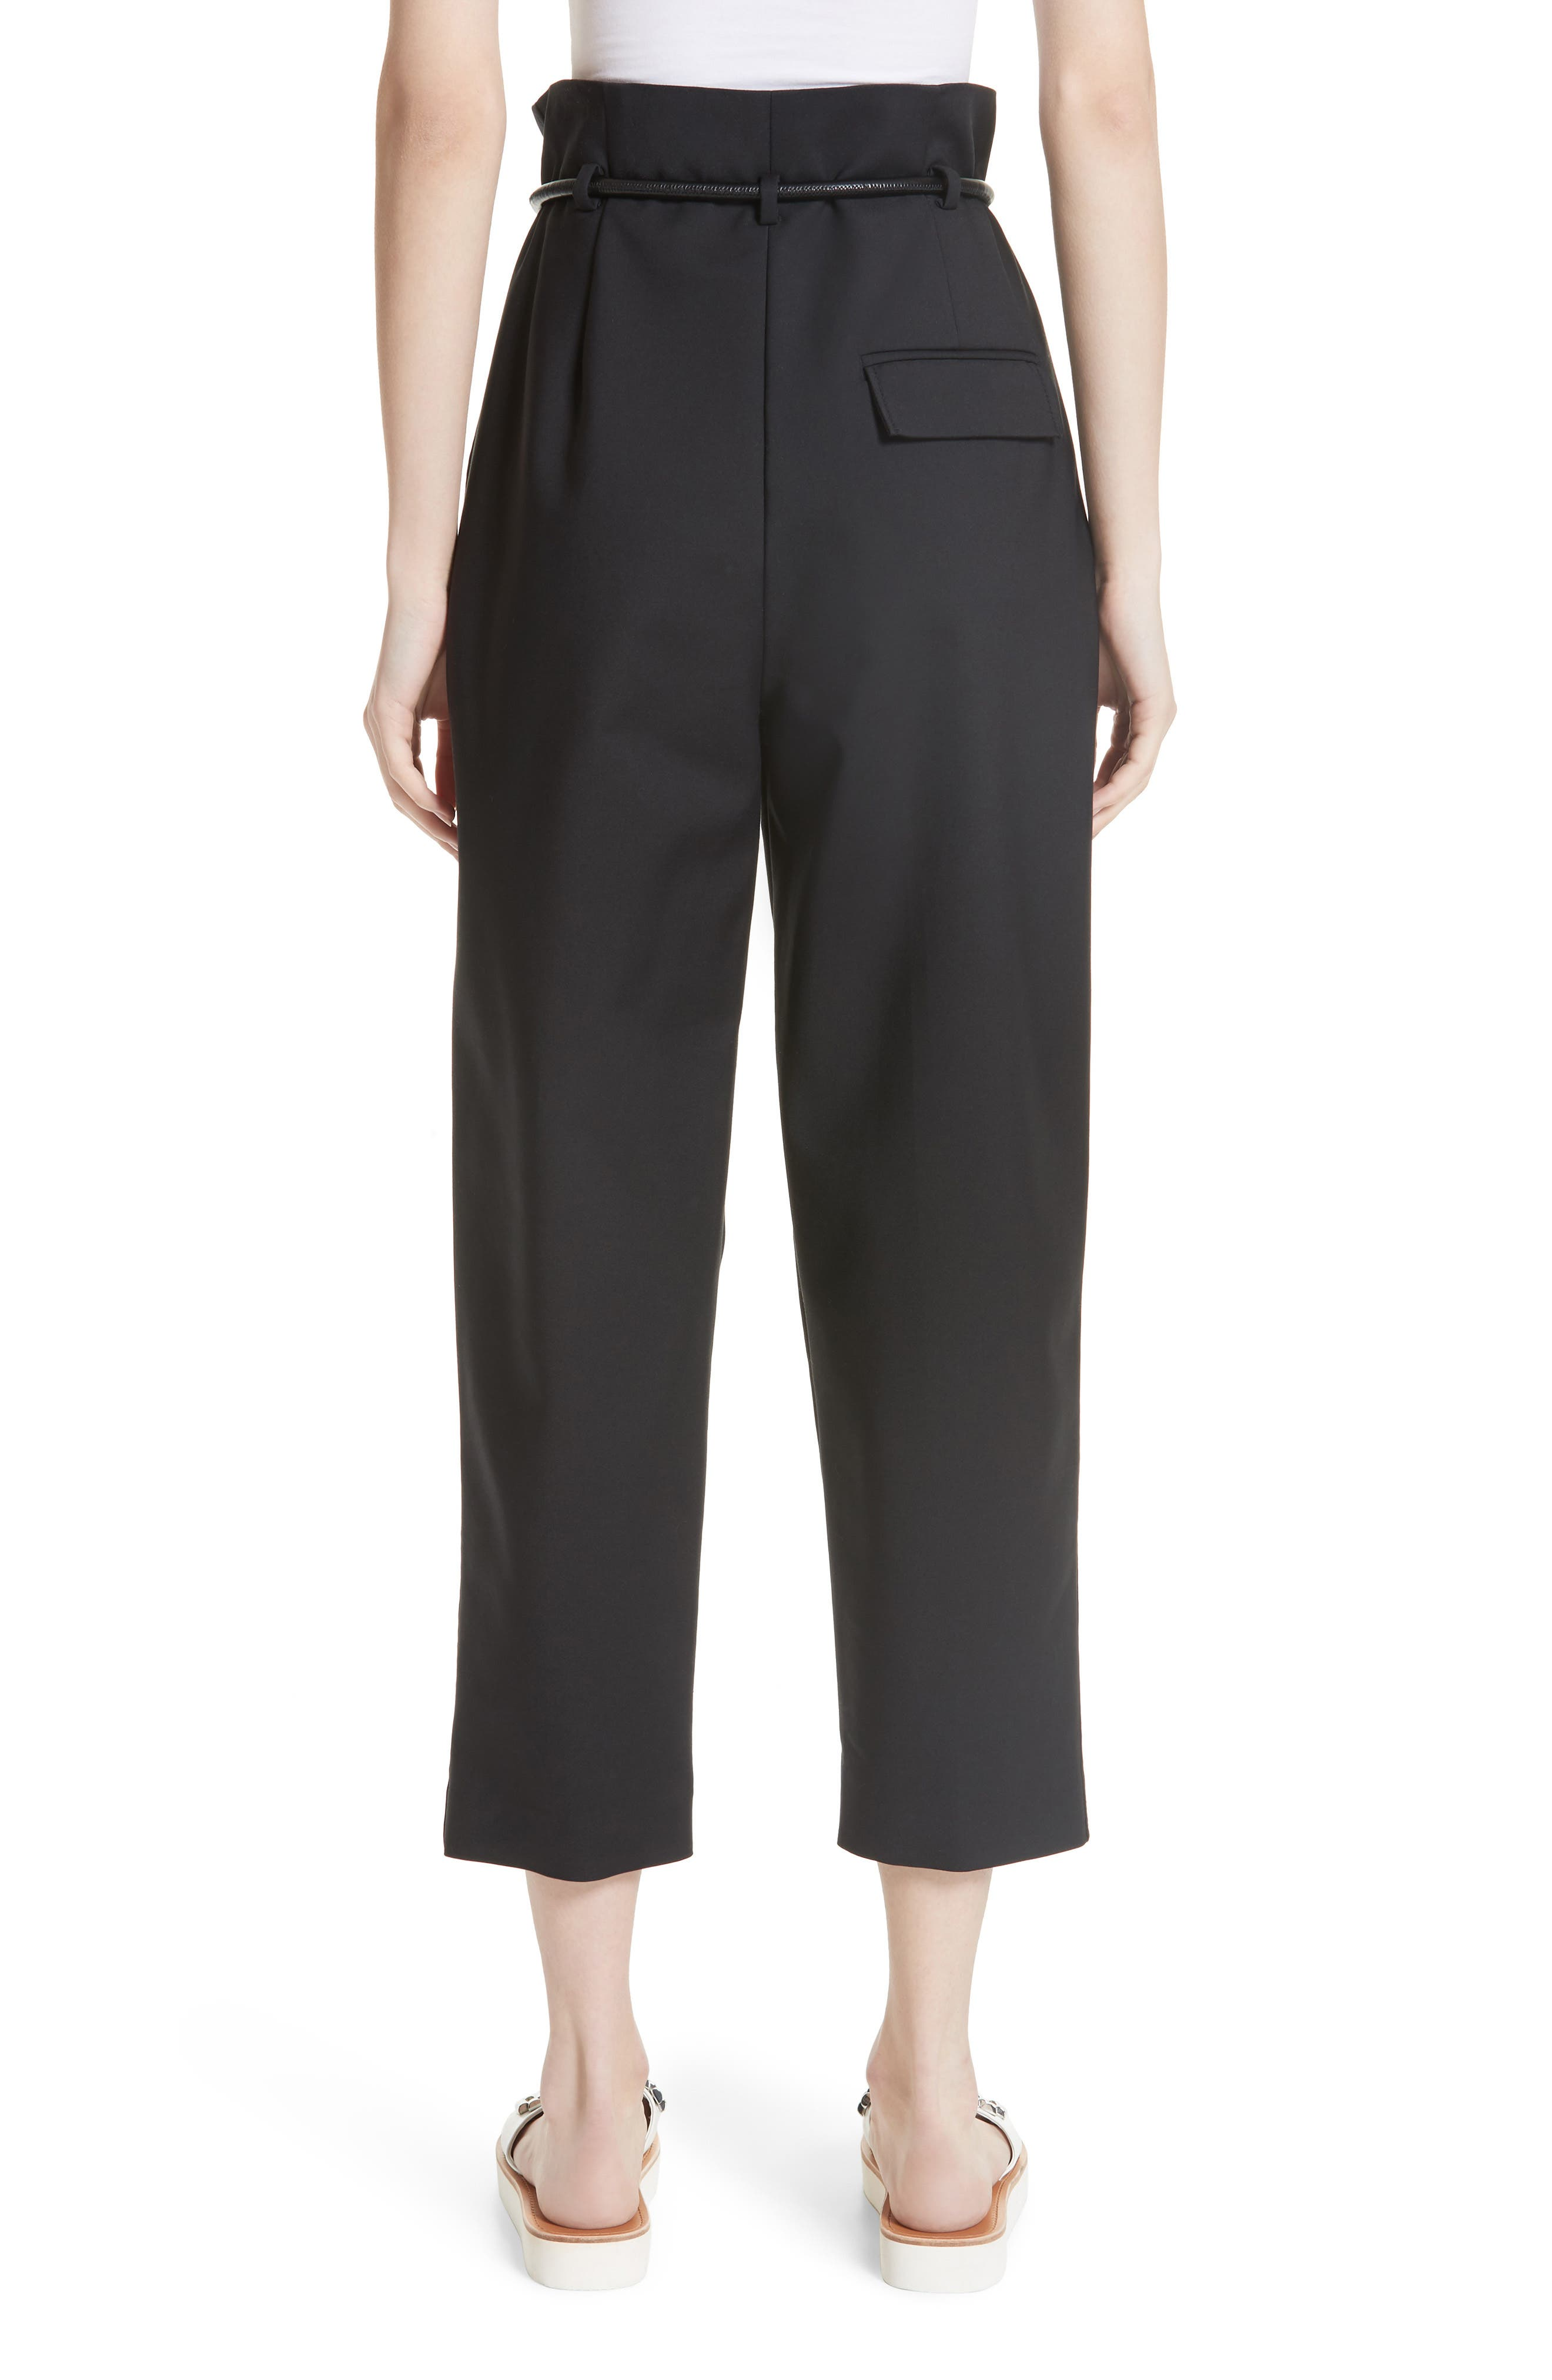 3.1 PHILLIP LIM,                             Origami Crop Flare Pants,                             Alternate thumbnail 2, color,                             001